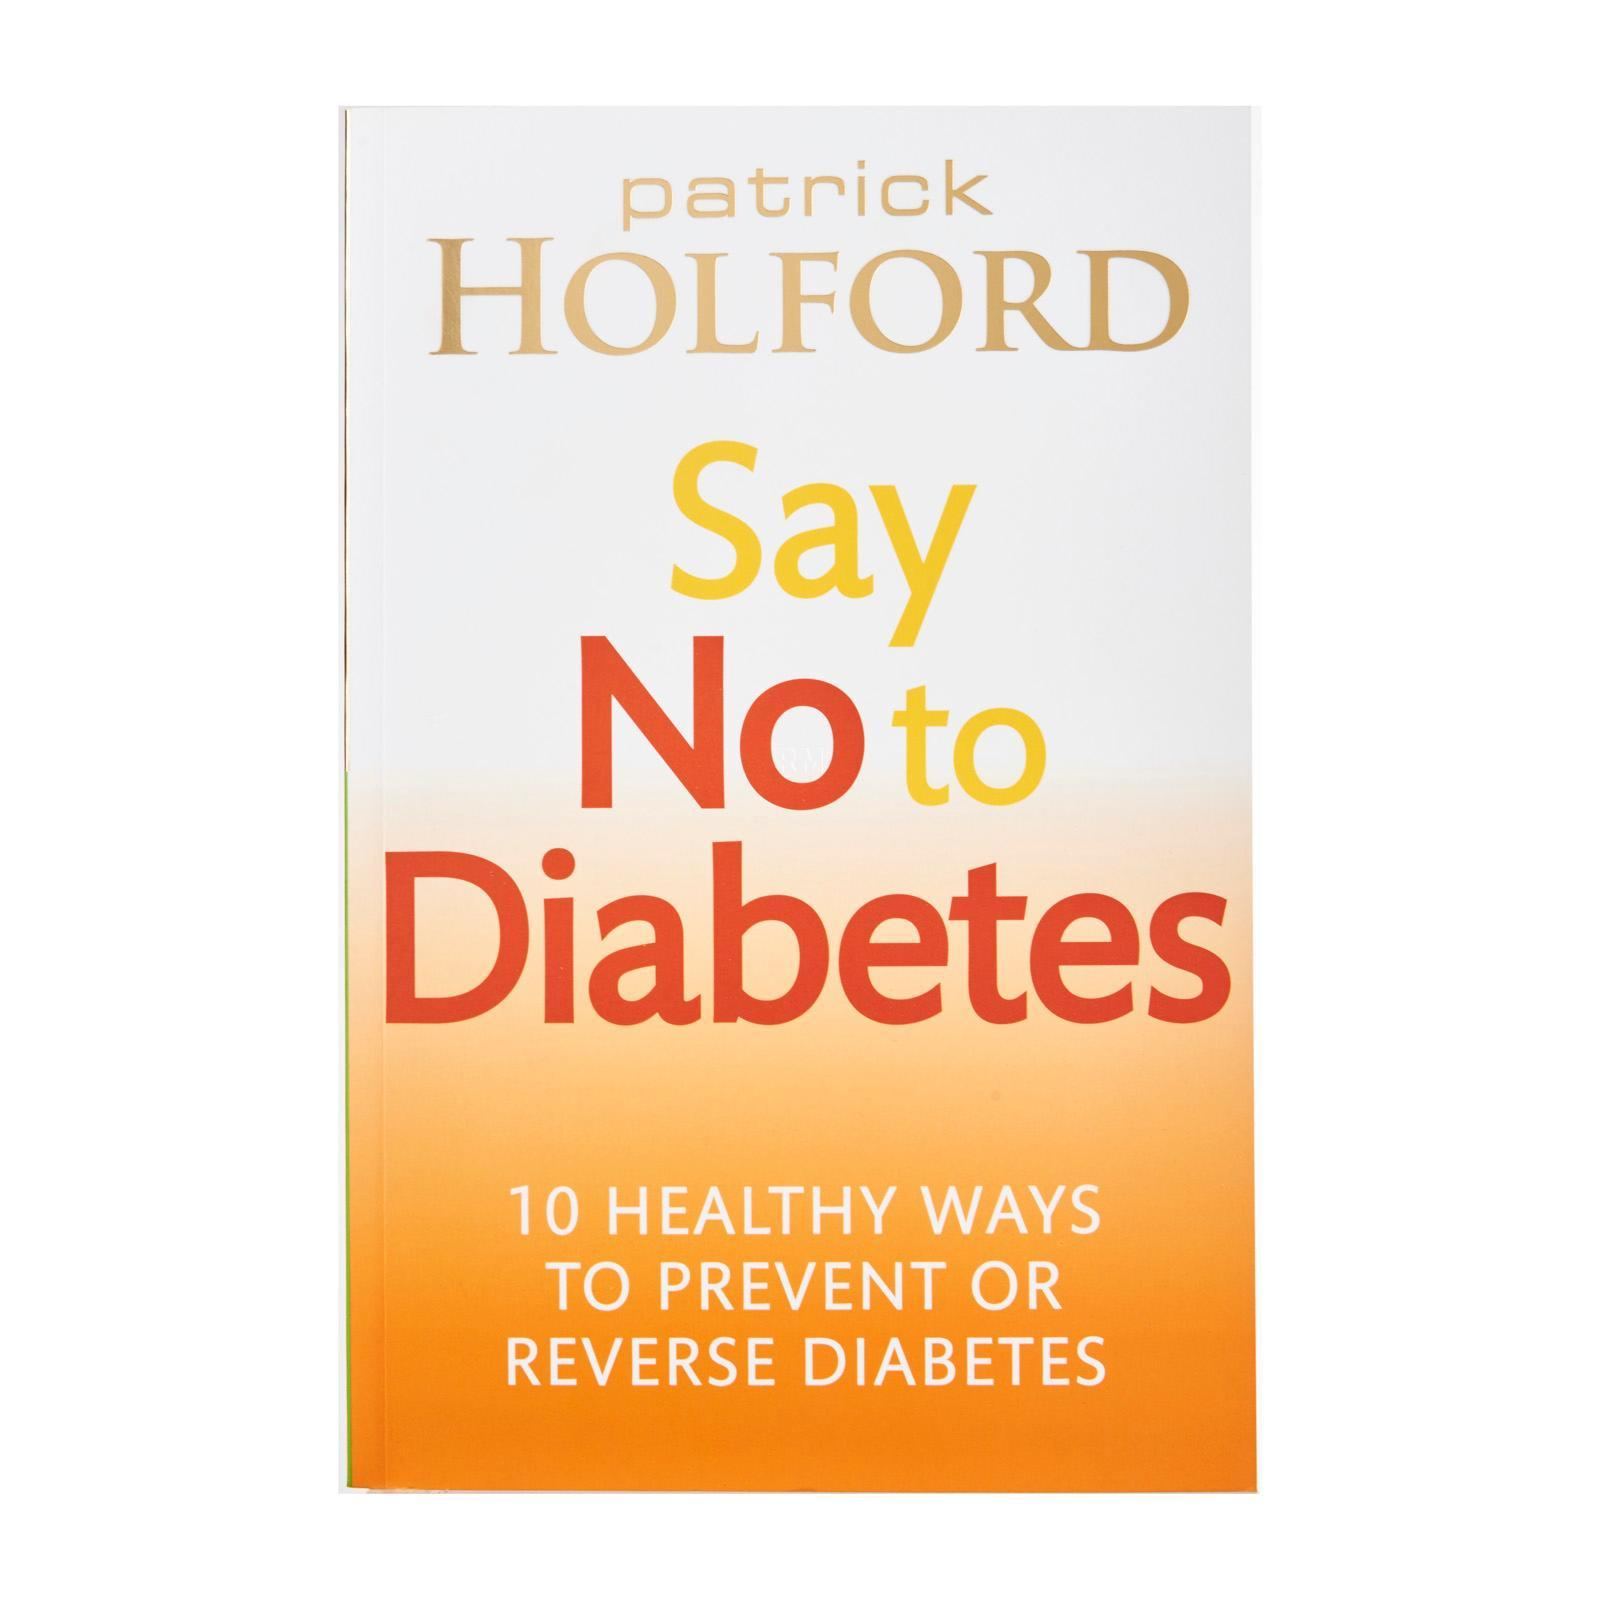 Say No To Diabetes: 10 Healthy Ways To Prevent Or Reverse Diabetes By Patrick Holford